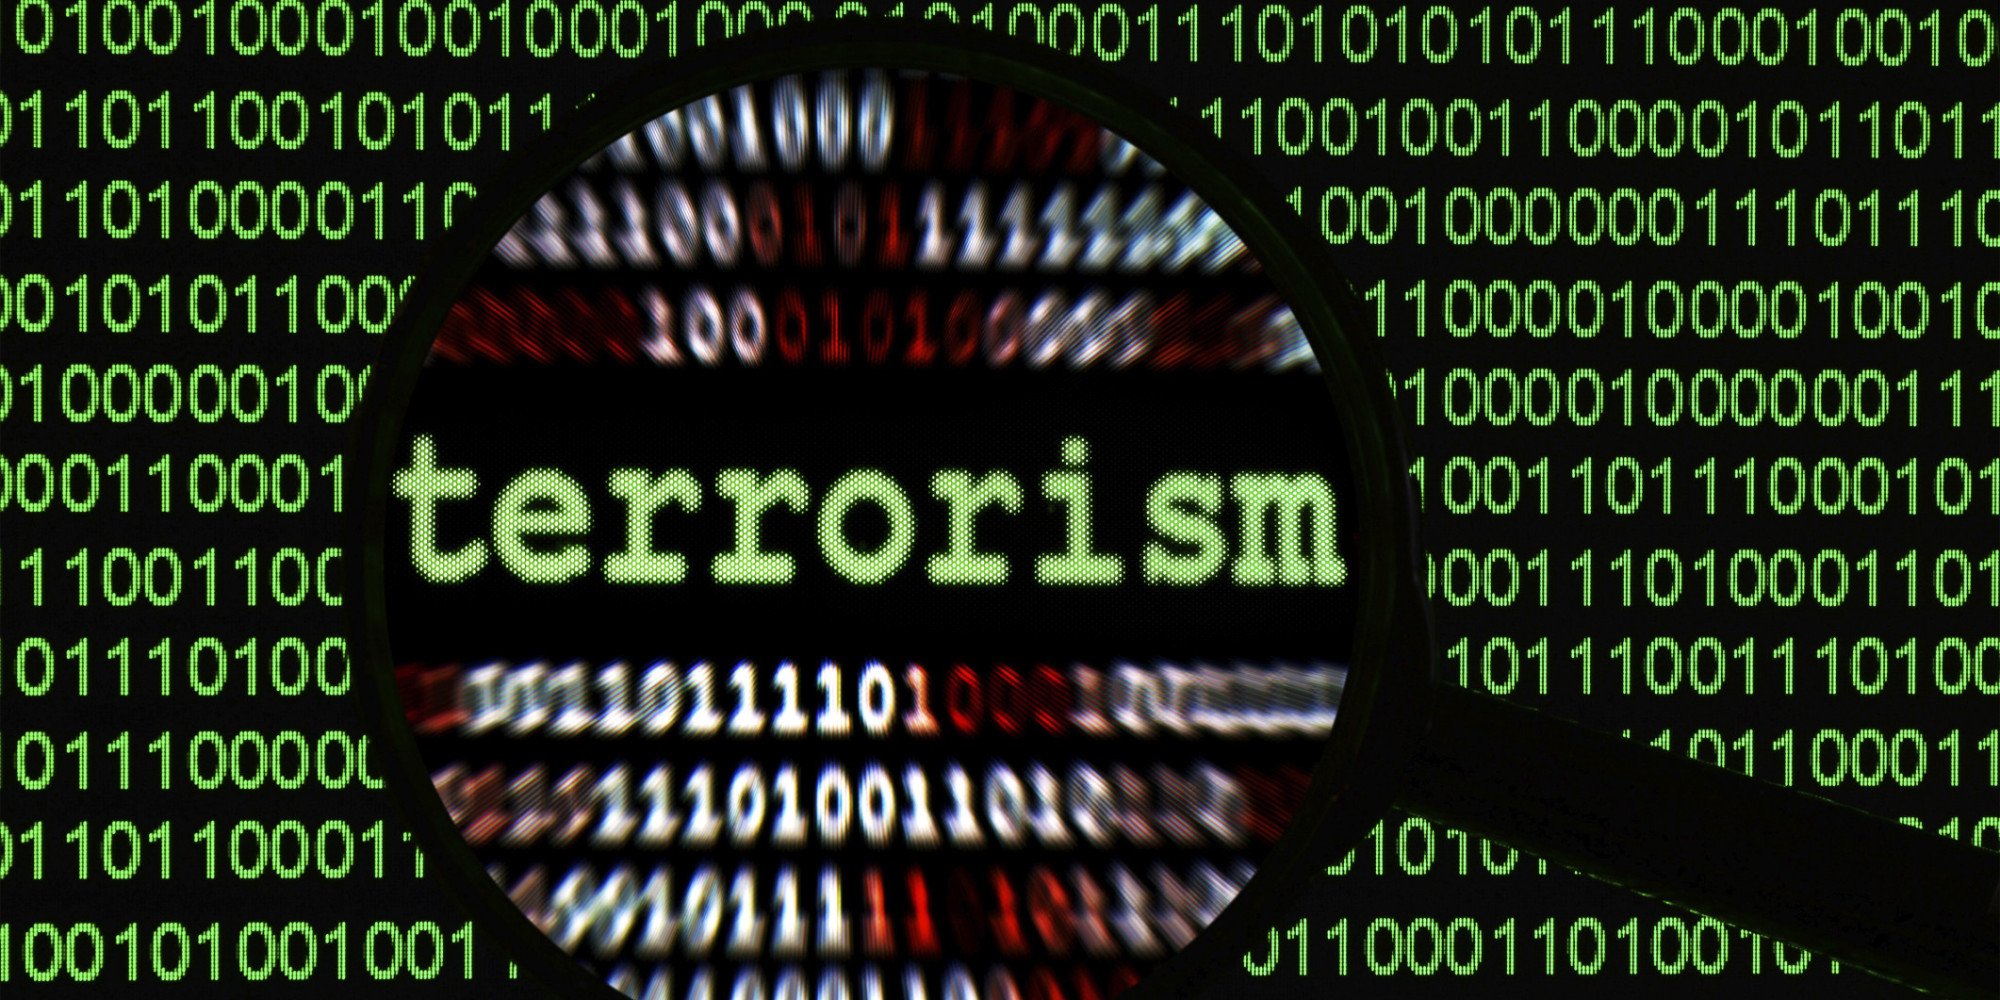 transnational crime and terrorism relationship questions